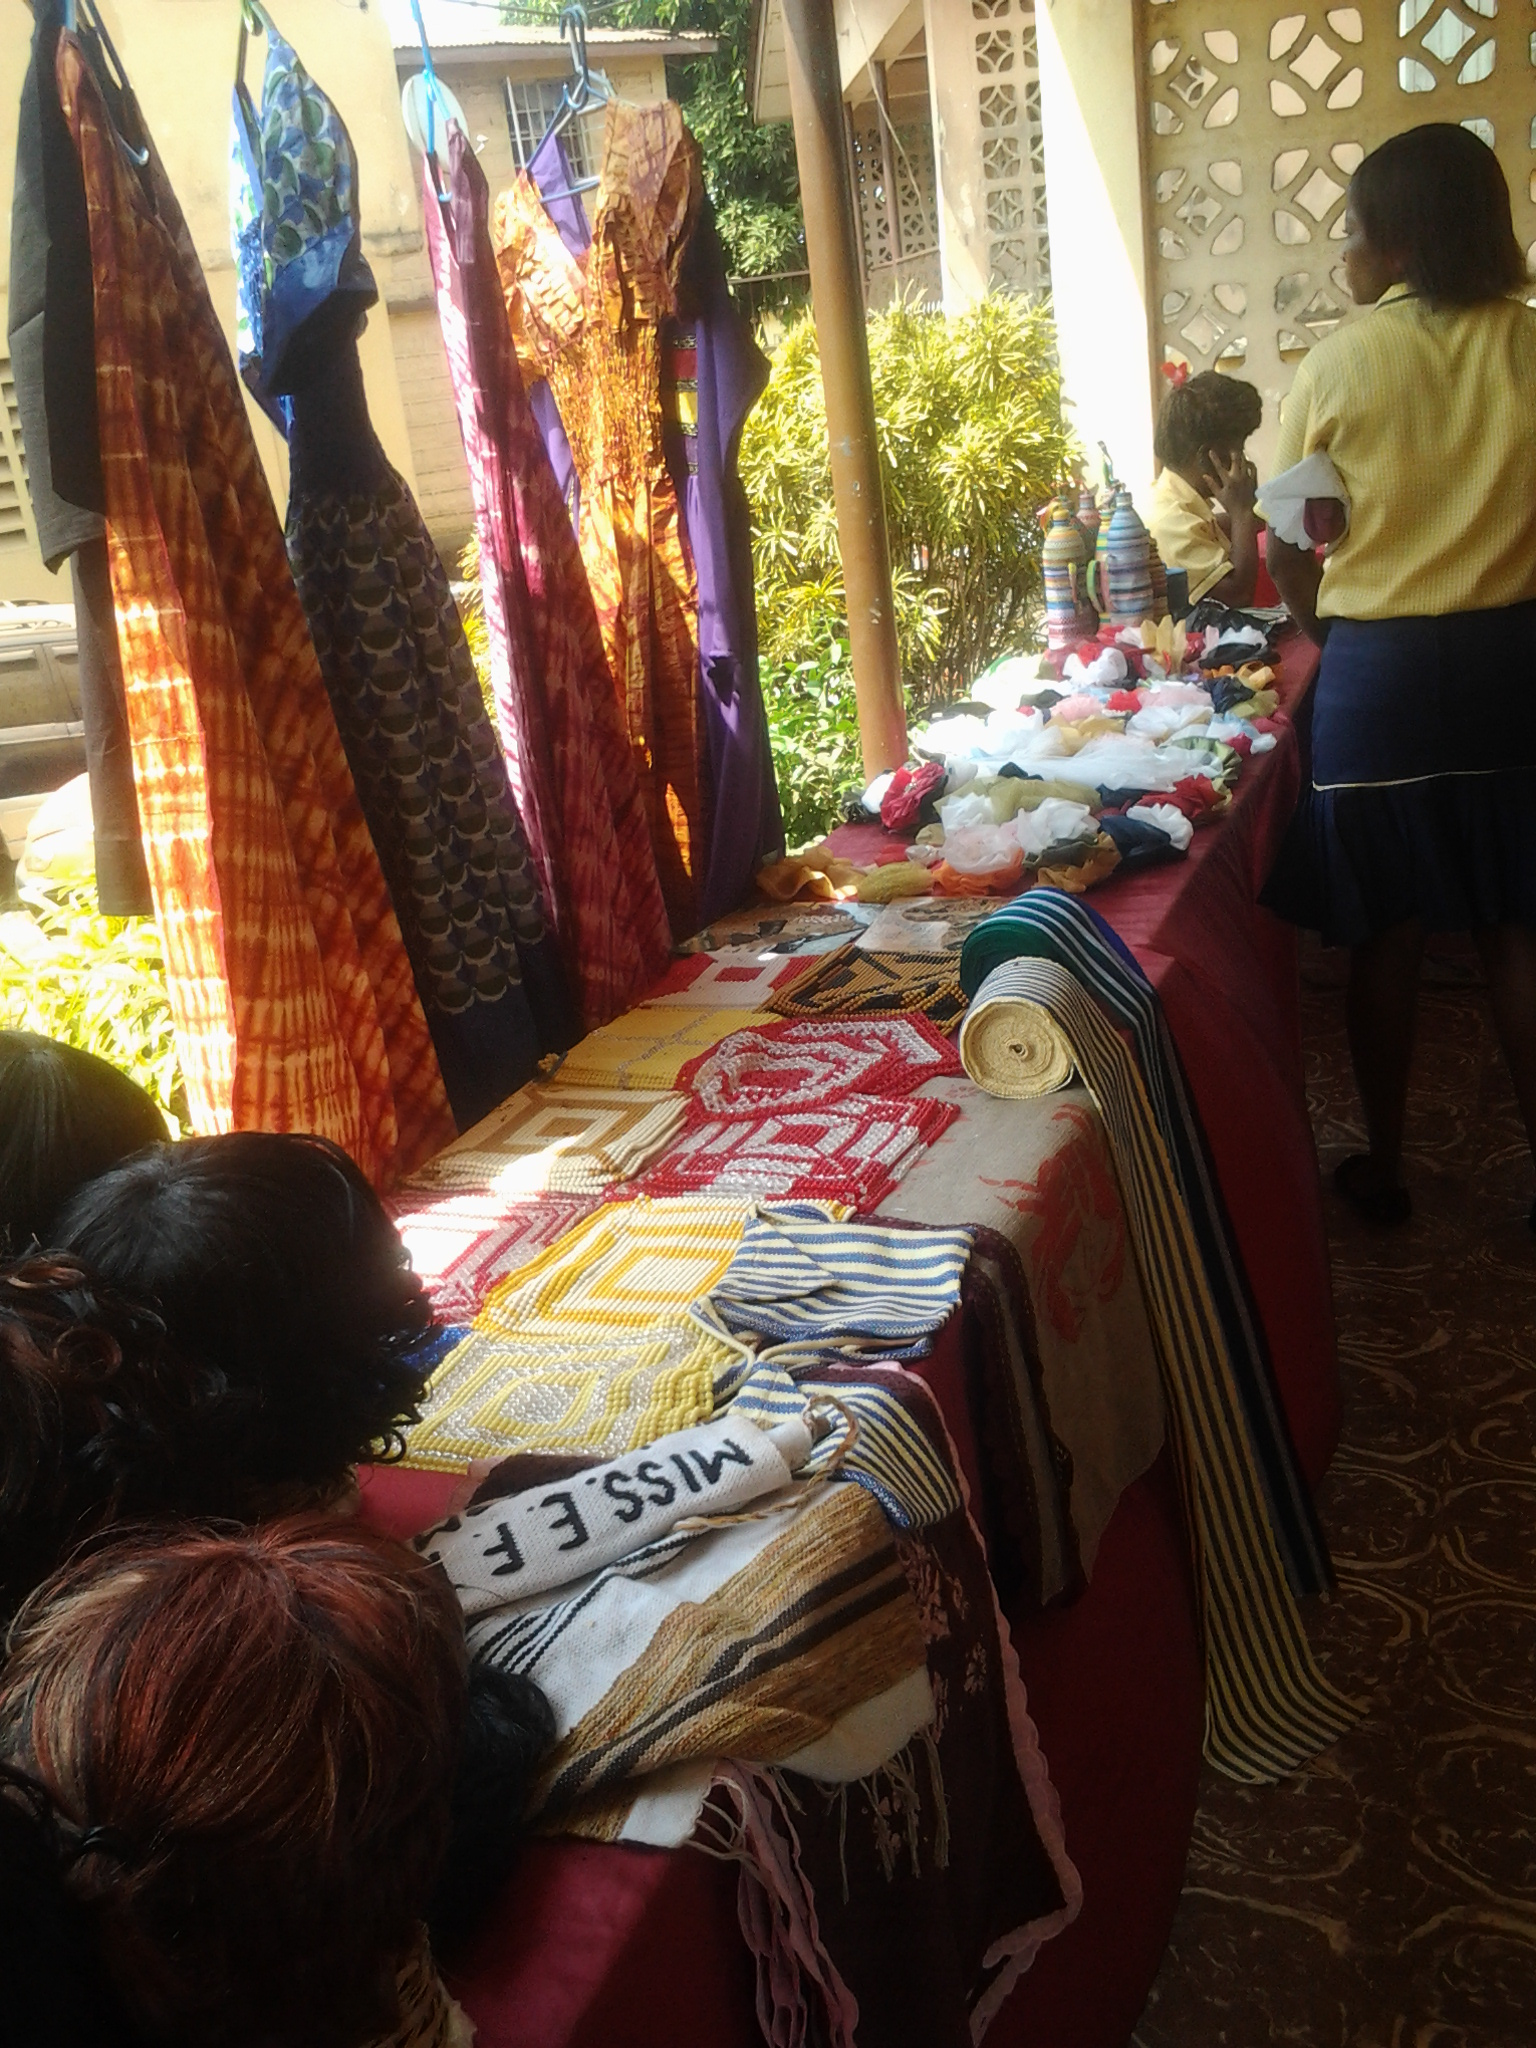 The beautiful batik and handicrafts created by students at the Women in Action Development Project